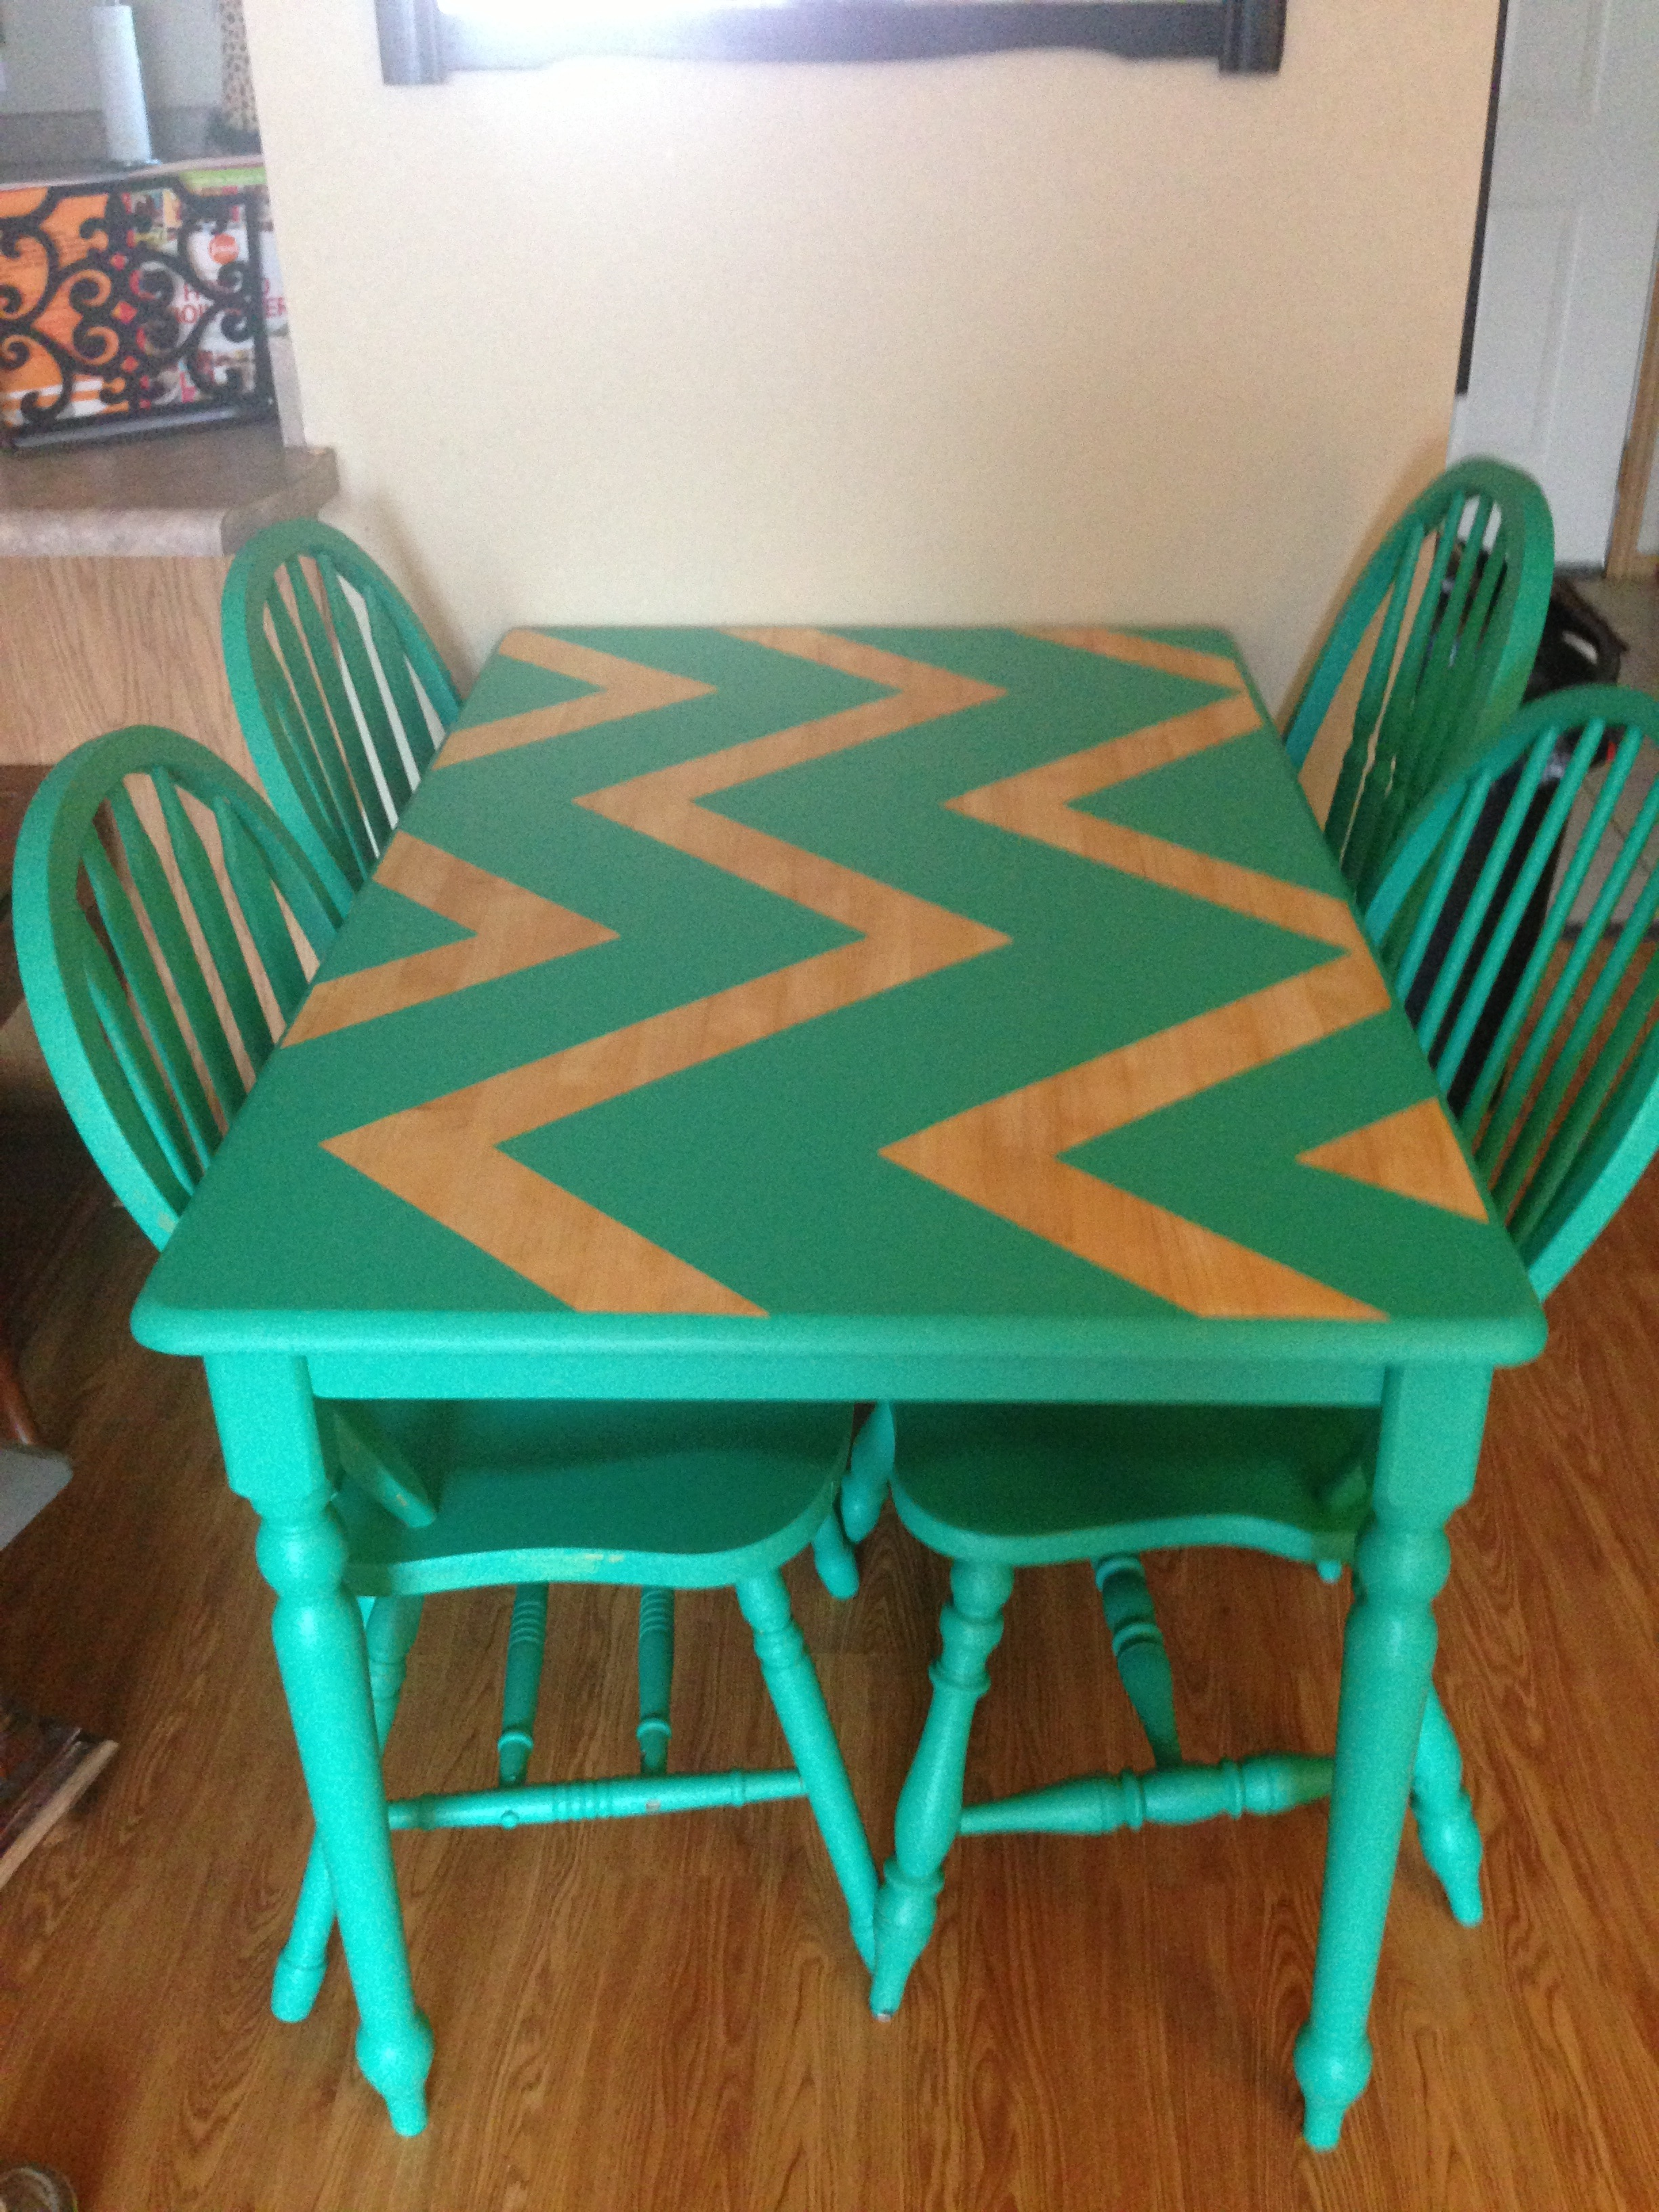 diy painting kitchen table and chairs K*VoUCovw painting kitchen table DIY